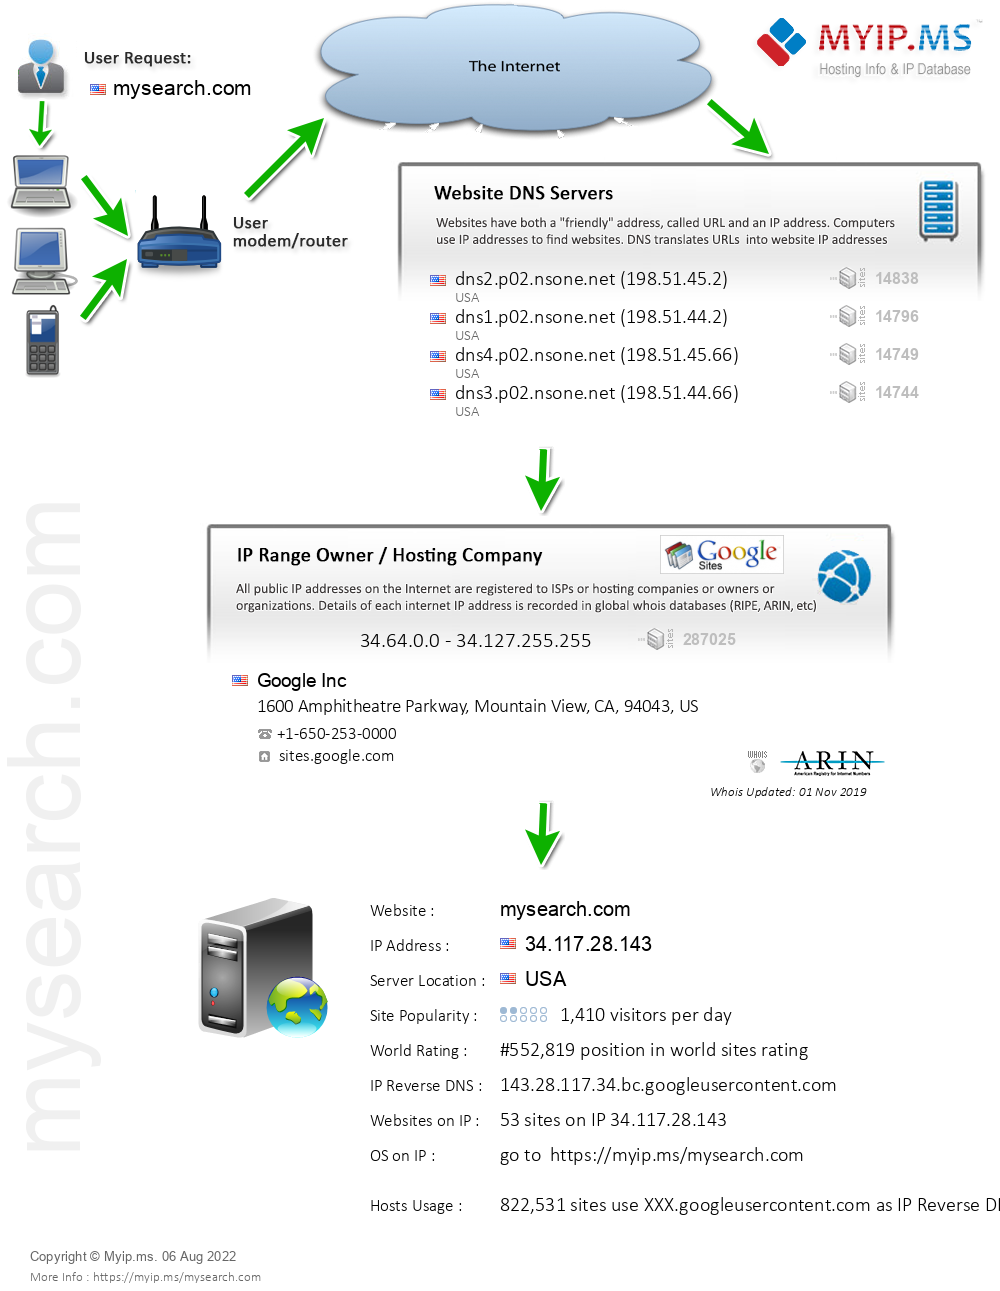 Mysearch.com - Website Hosting Visual IP Diagram